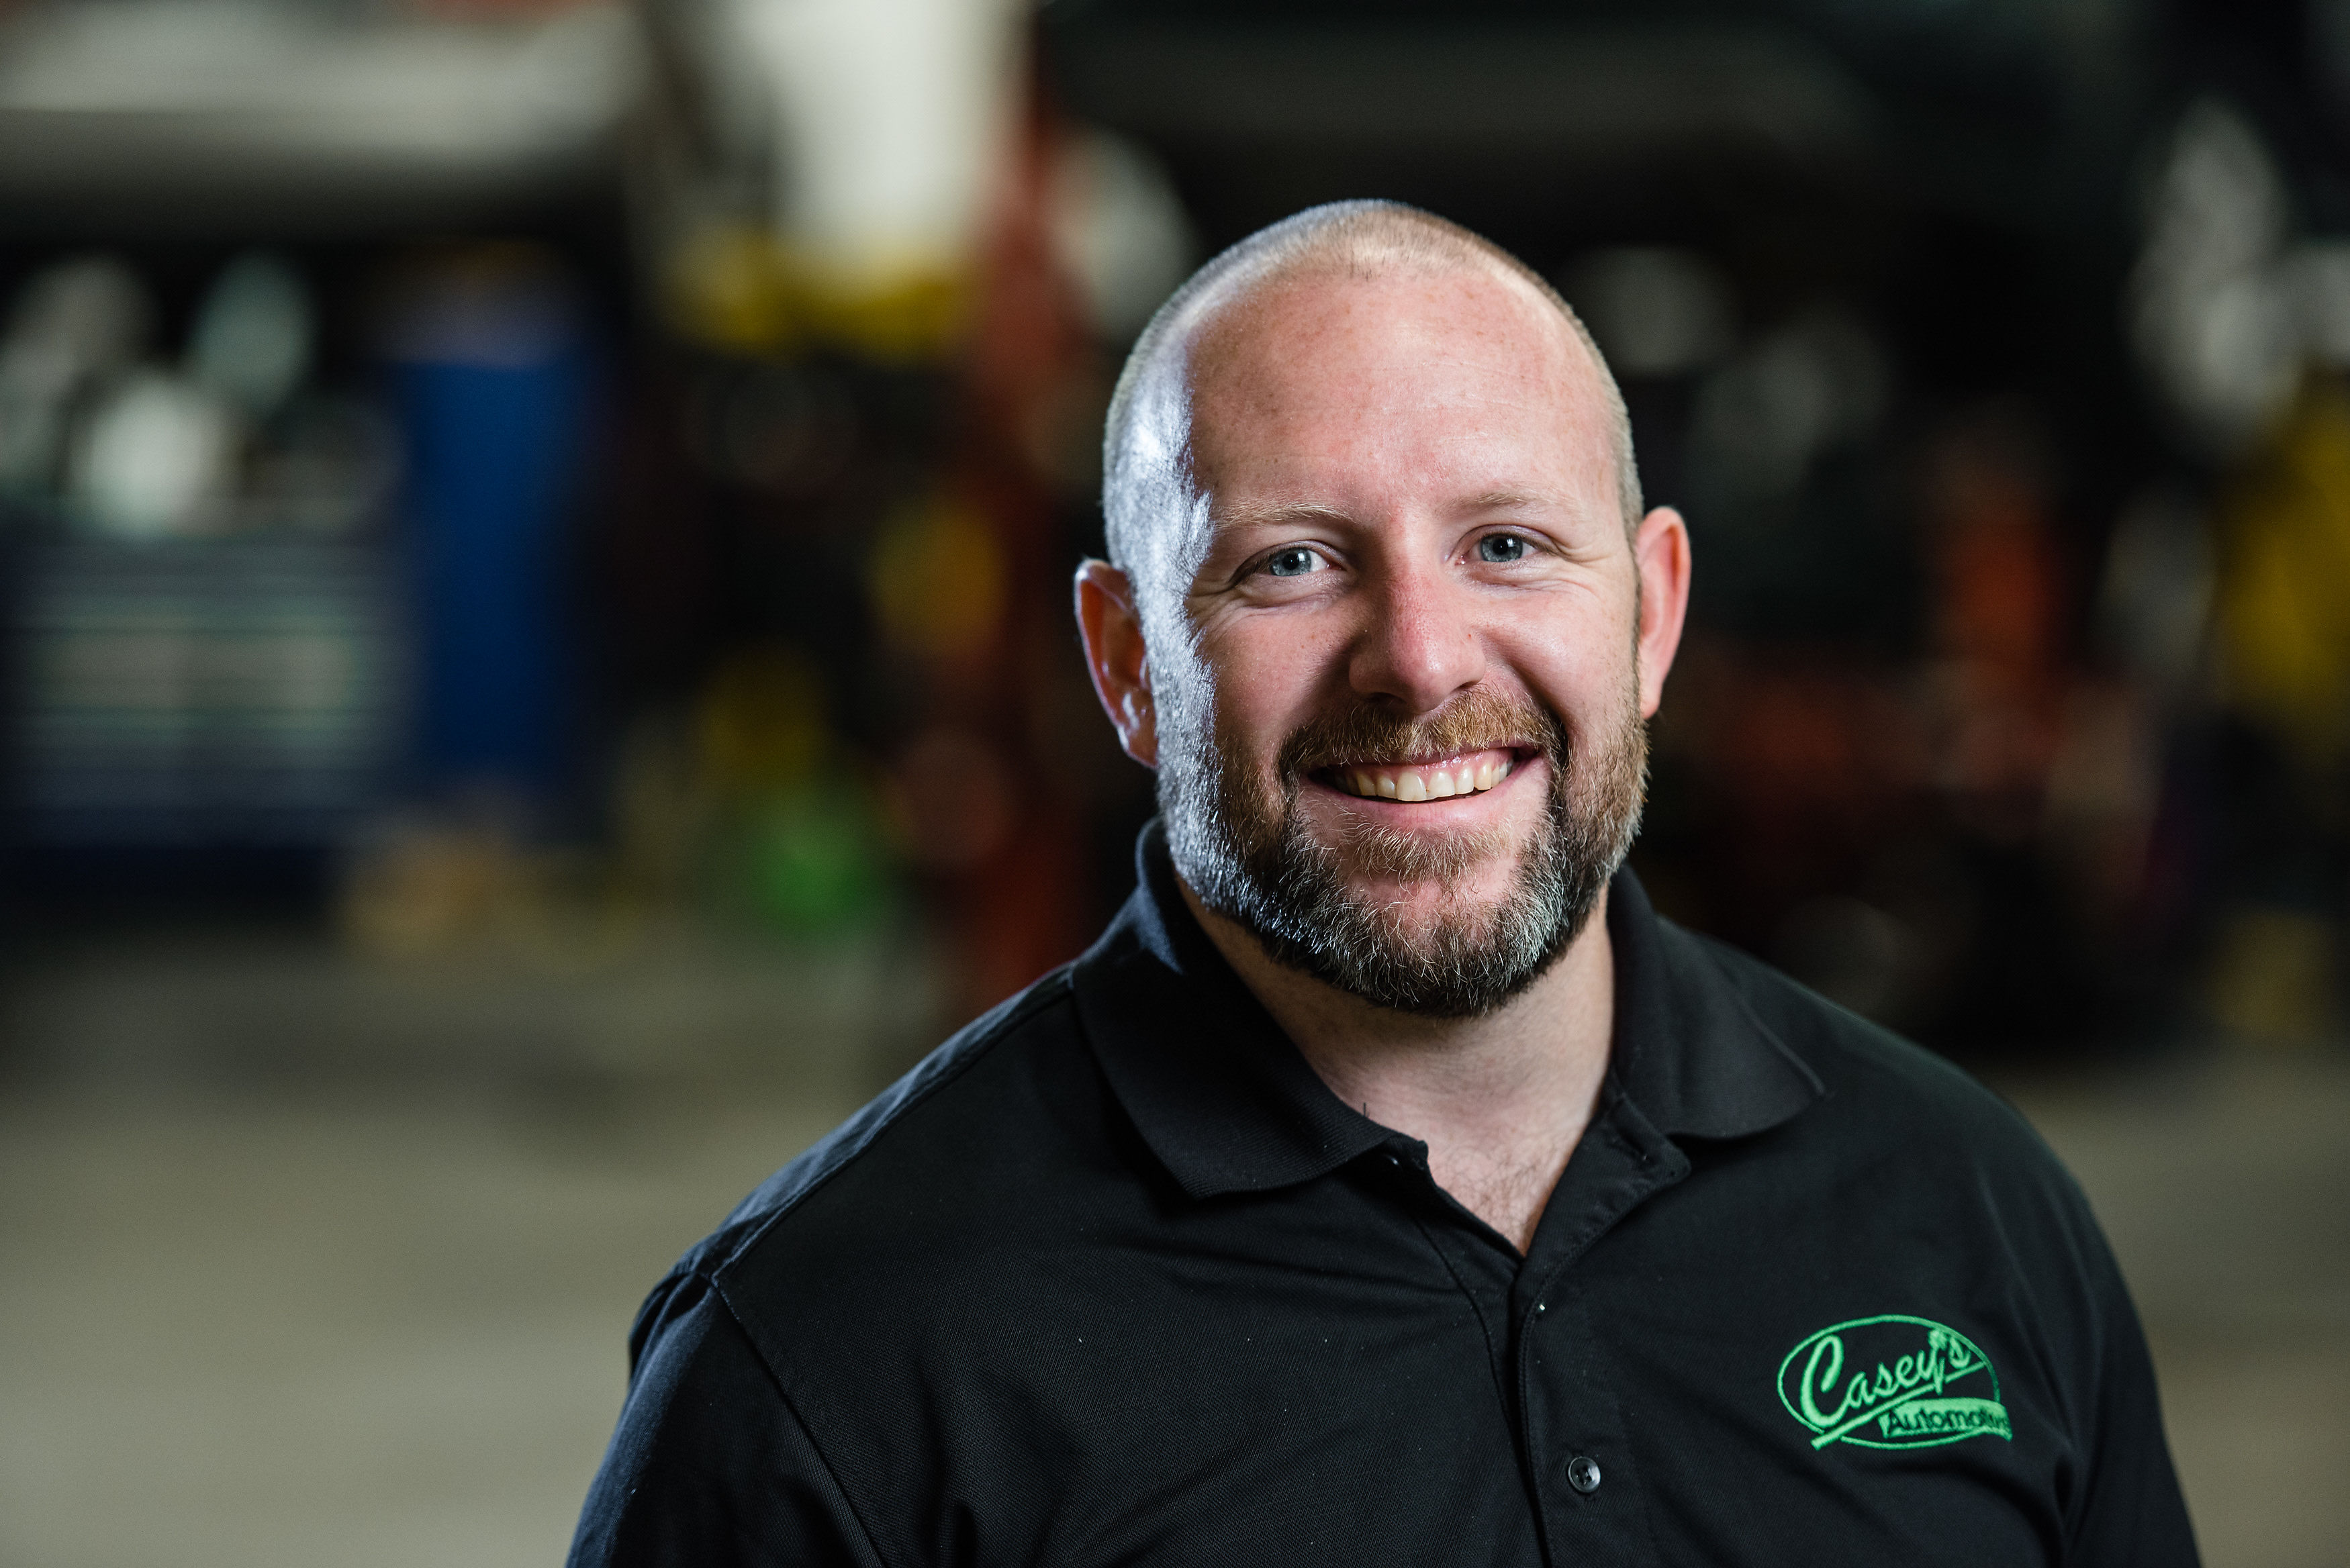 Tekmetric's Shop Spotlight: Casey's Automotive